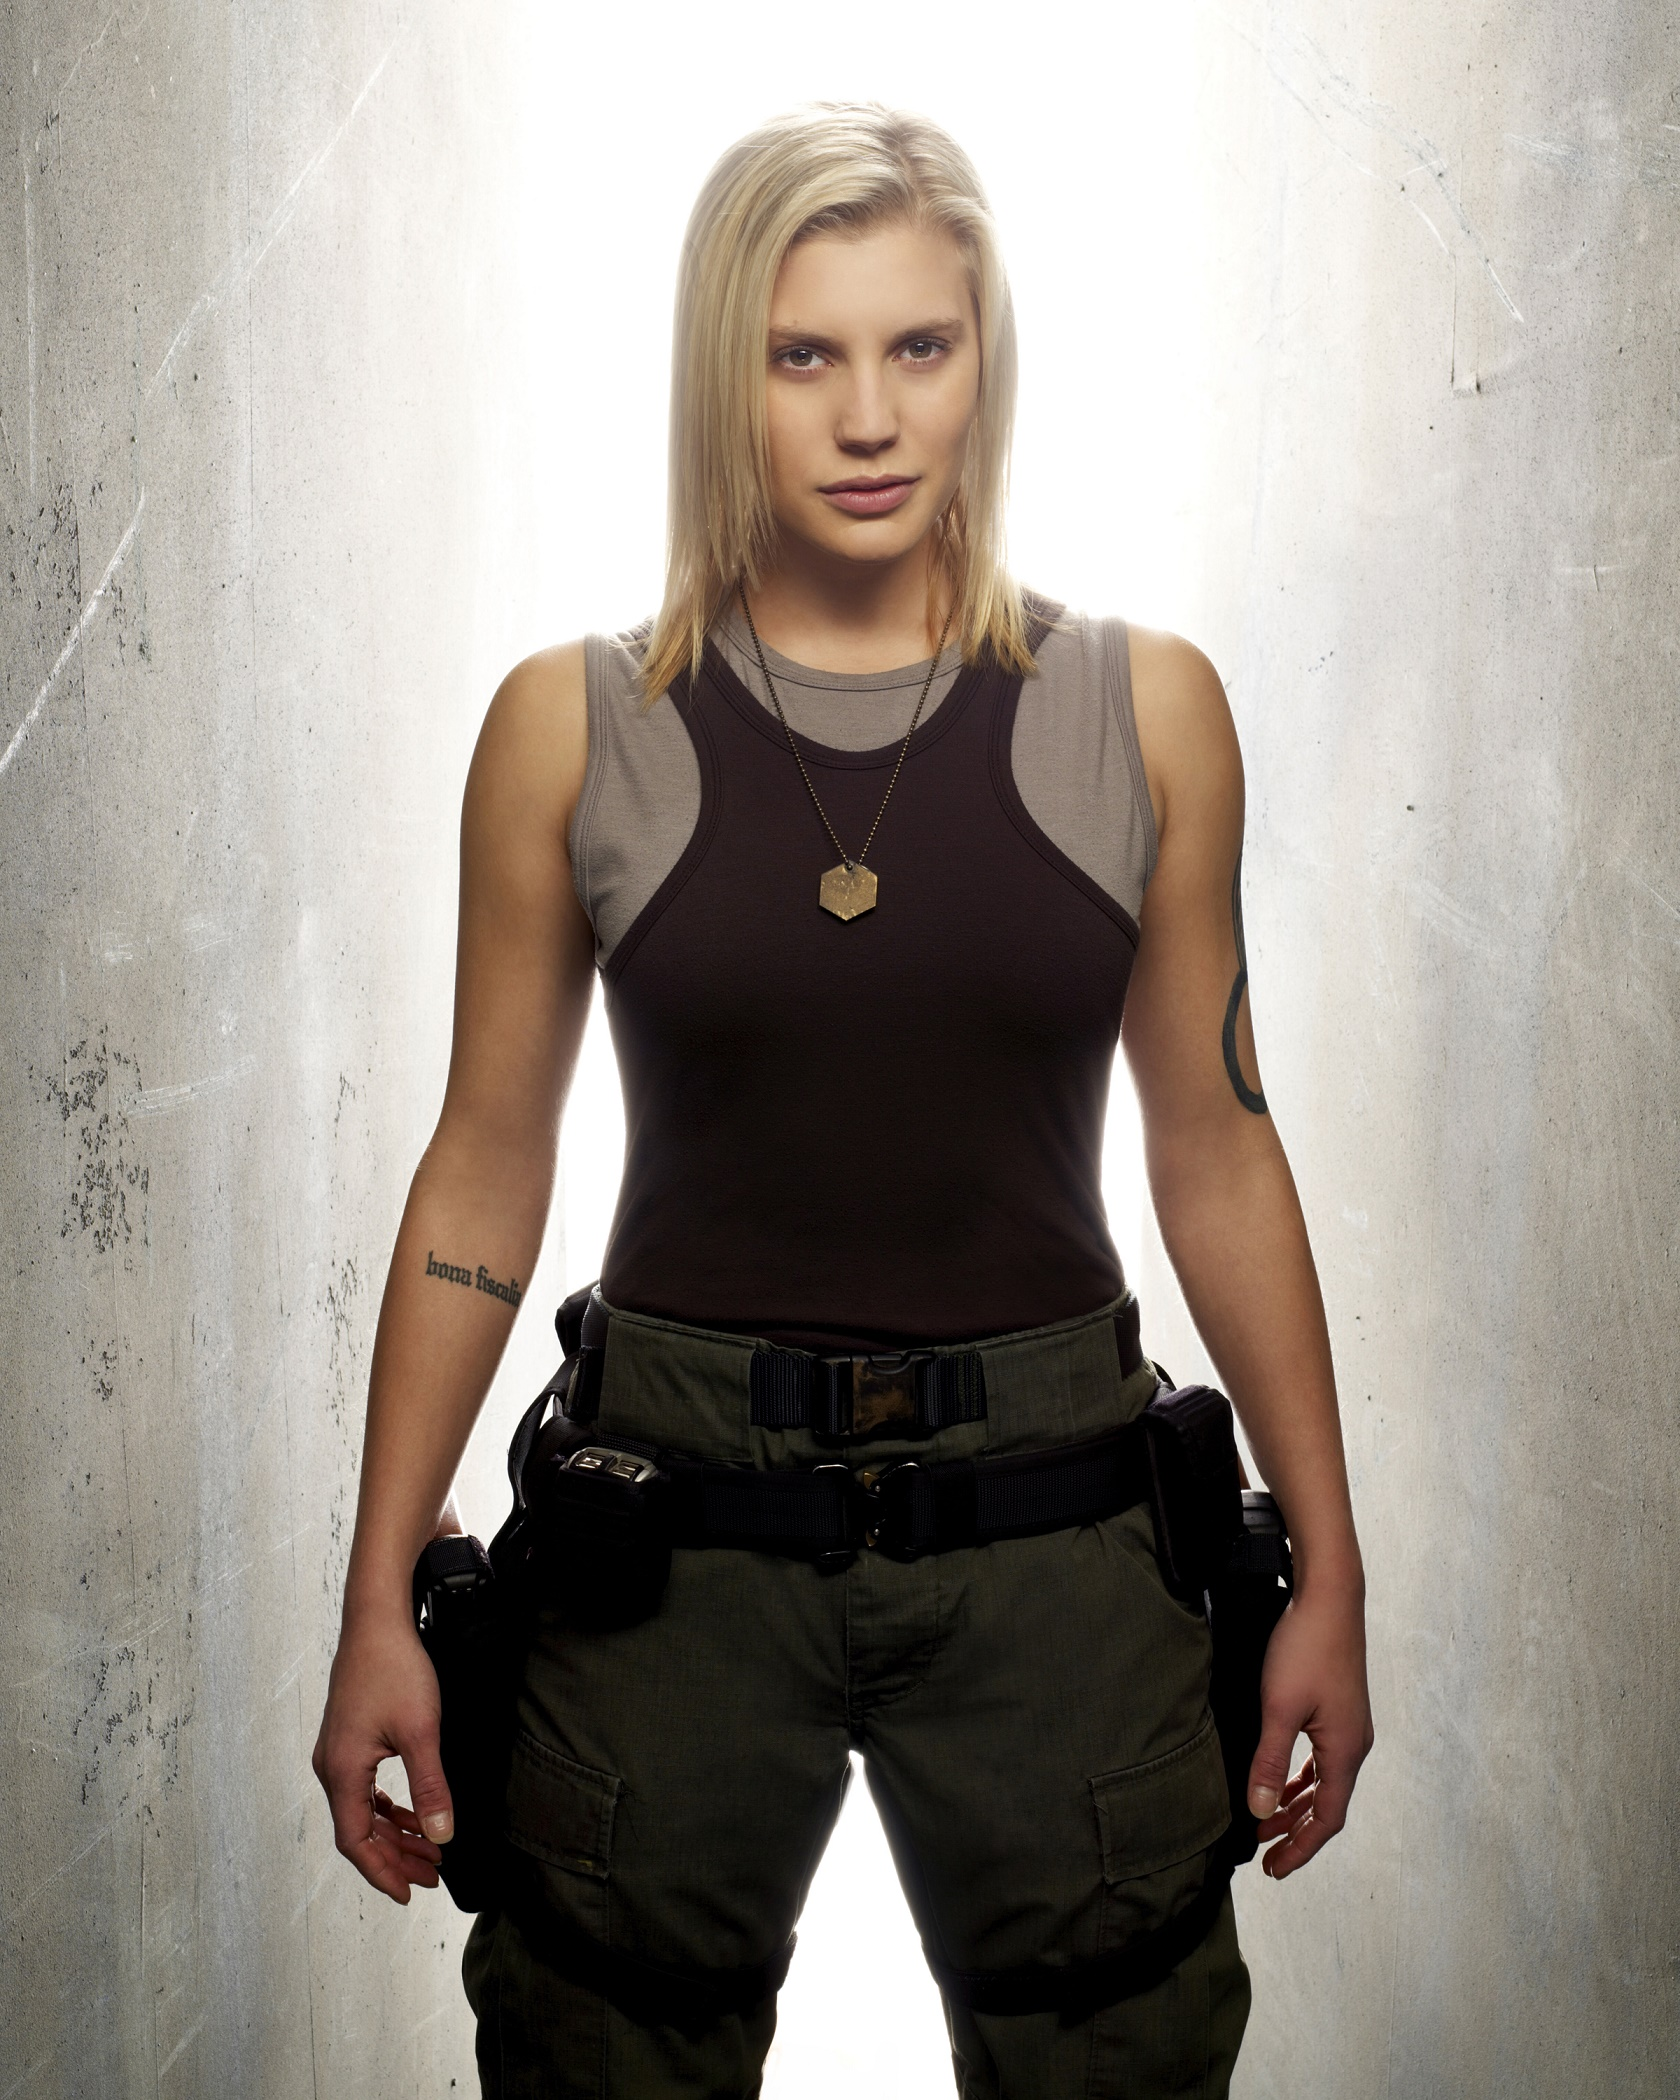 Katee Sackhoff Hot Pictures, Spicy Bikini Images Swimsuit